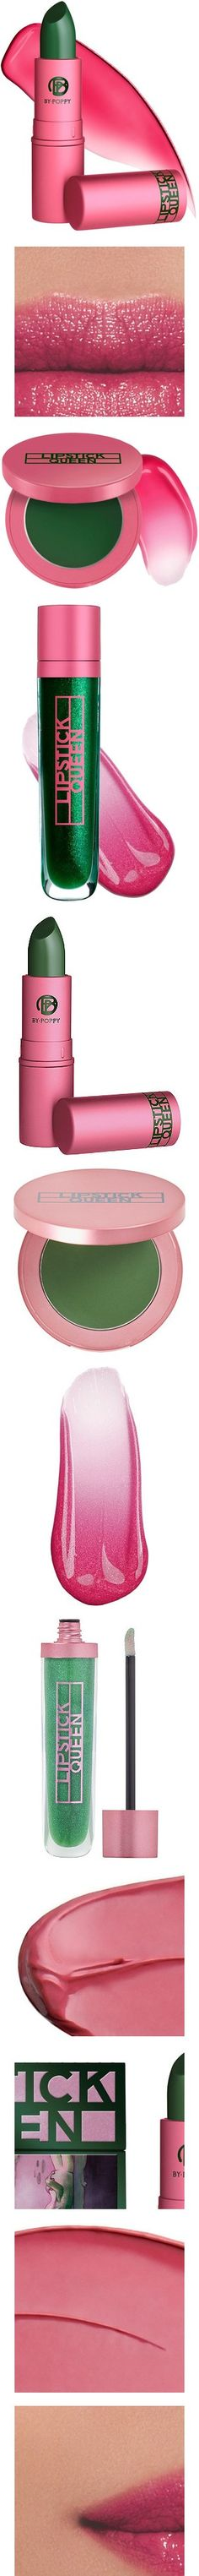 Pink and Green Frog Prince Makeup by Lipstick Queen! #Pink #Green #Frog_Prince #LIpstick_Queen